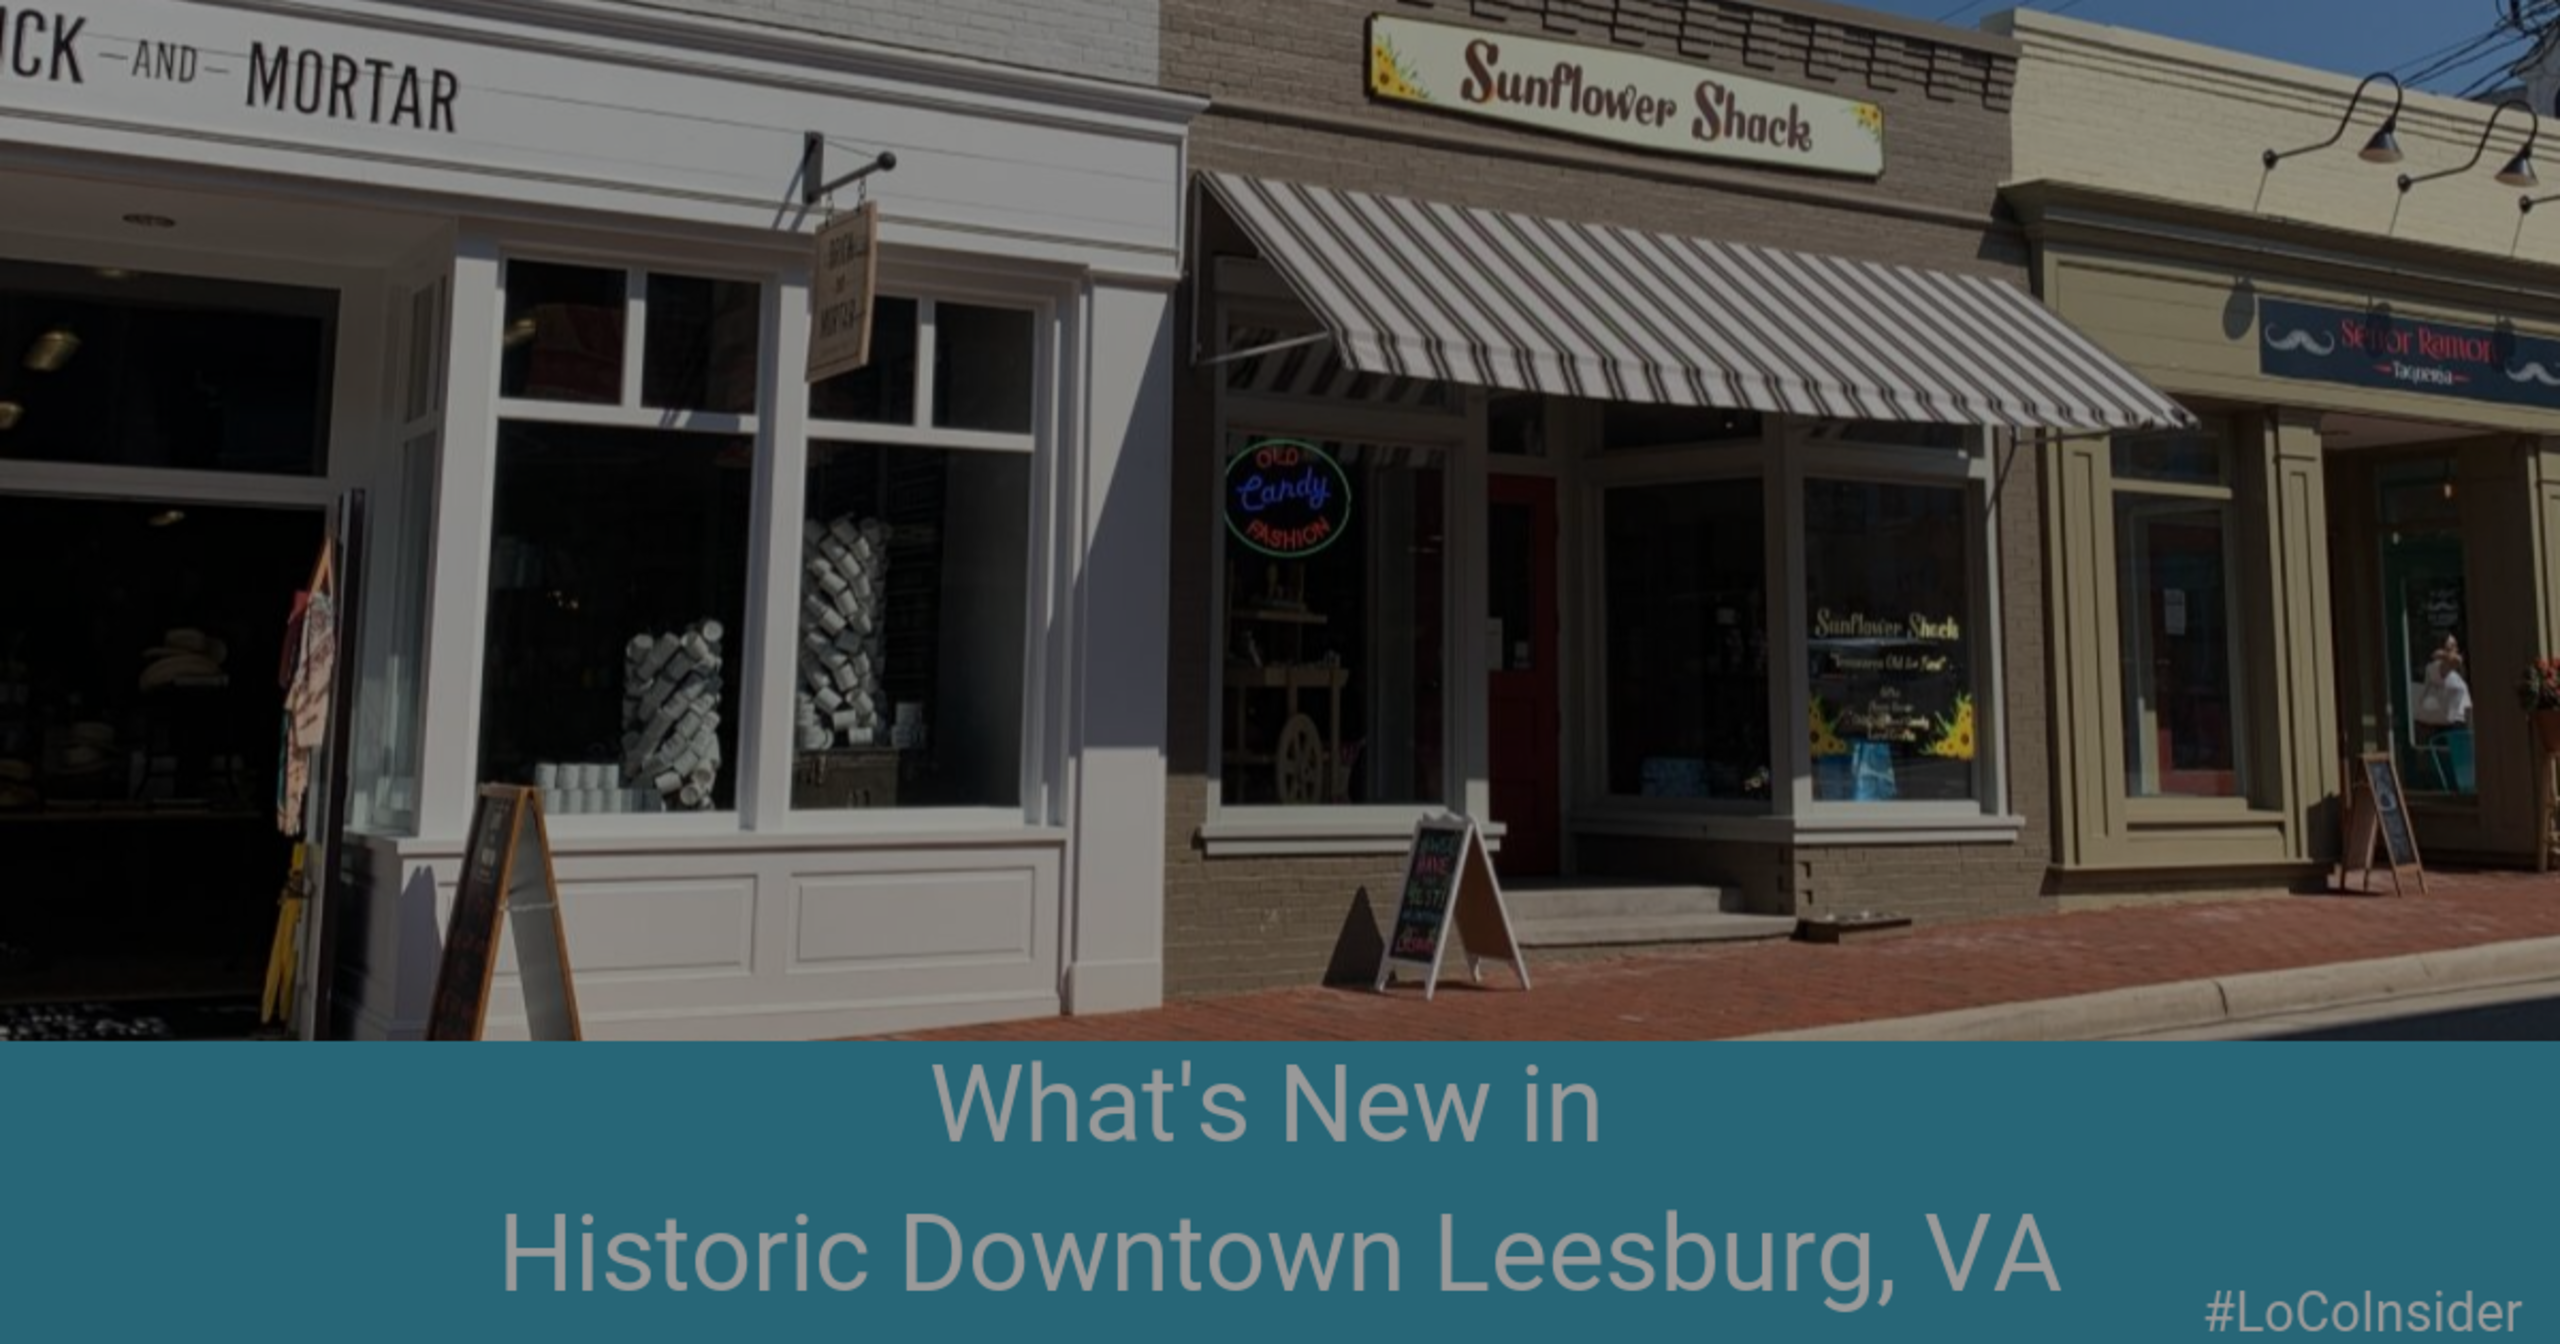 What's New in Historic Downtown Leesburg